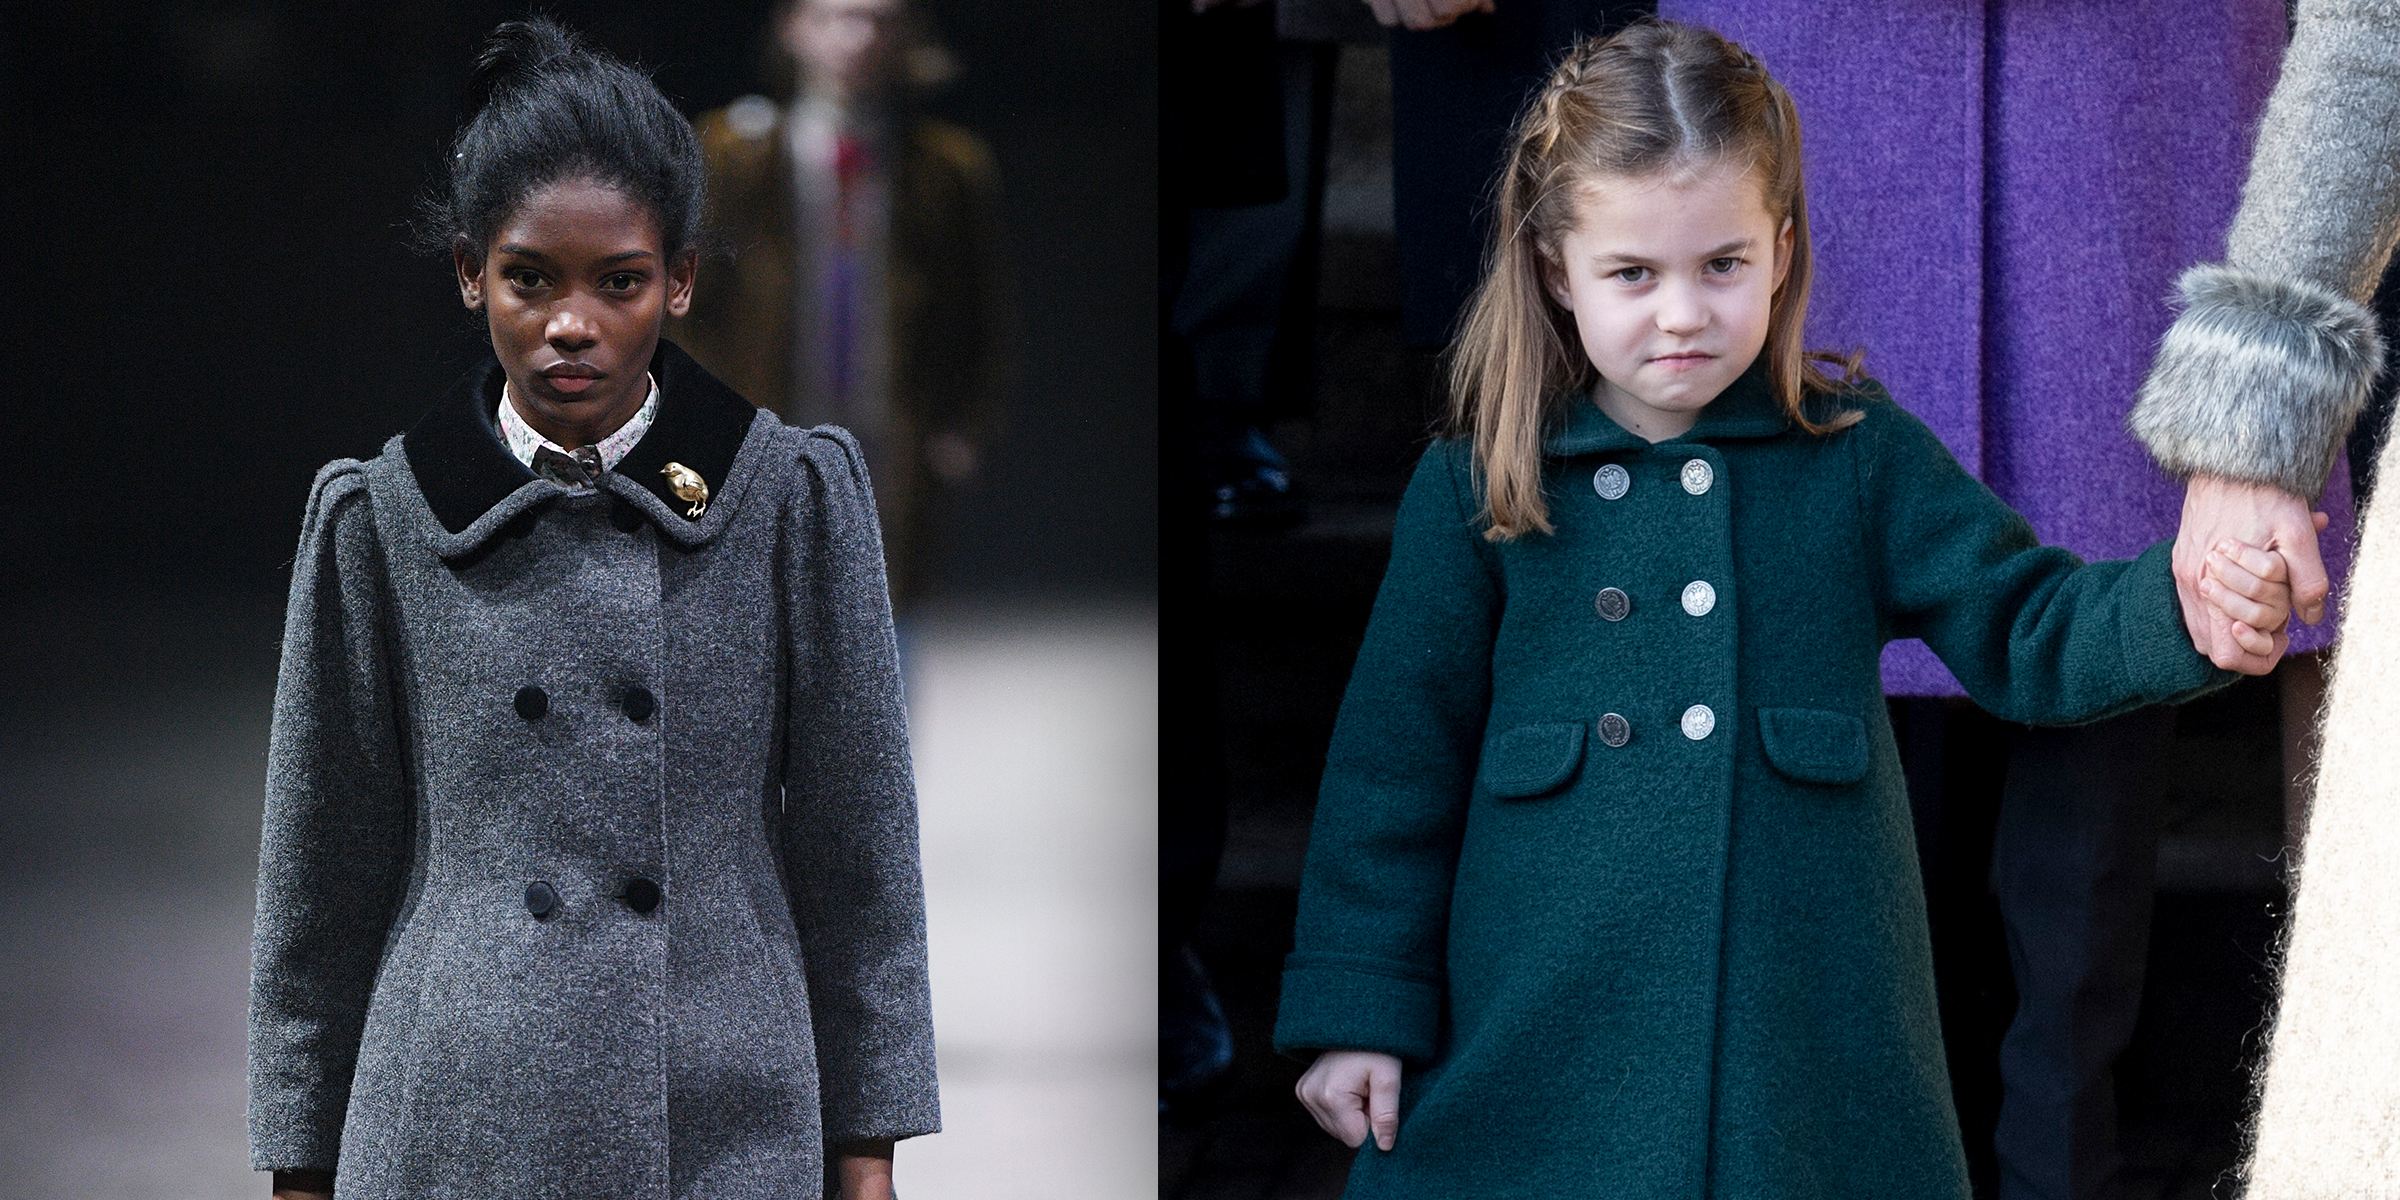 Did Princess Charlotte inspire Gucci's latest collection?